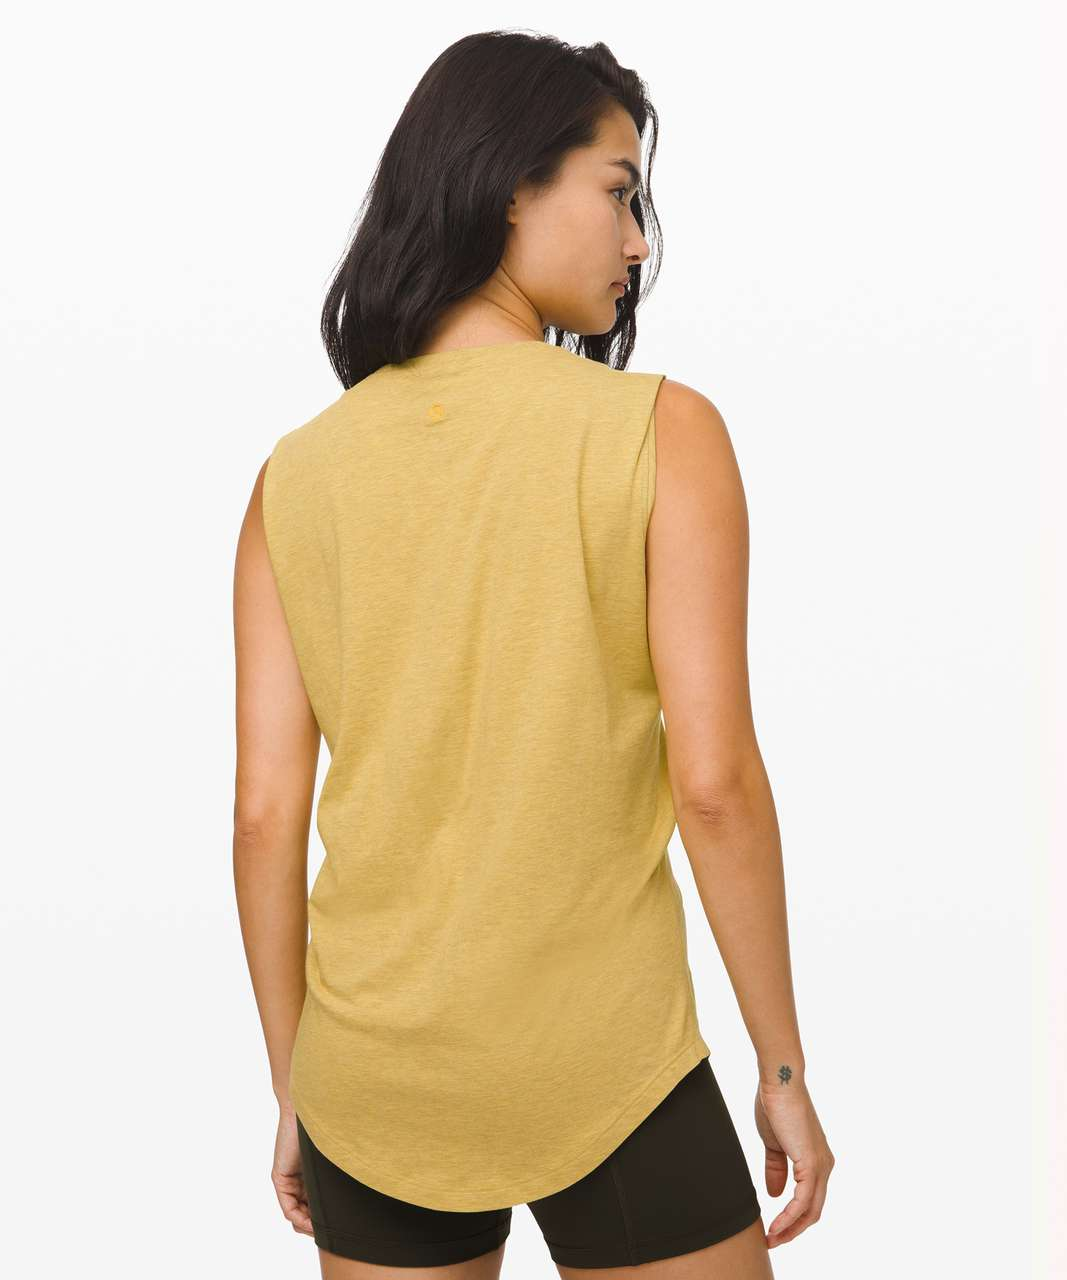 Lululemon Brunswick Muscle Tank - Heathered Honeycomb